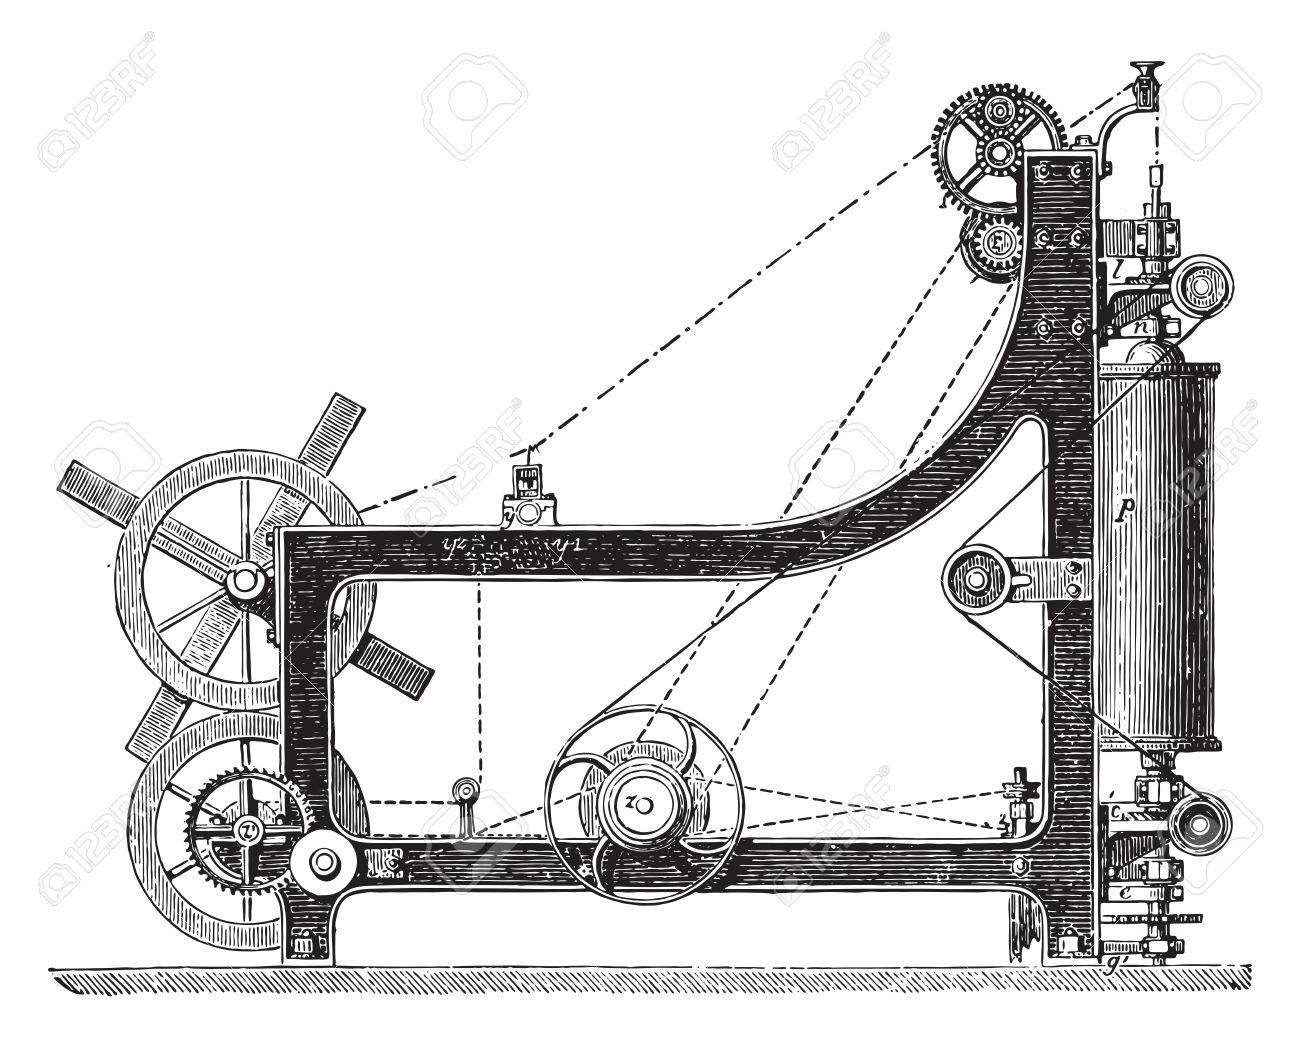 hight resolution of making machine rope yarn called a swing bridge vintage engraved illustration industrial encyclopedia